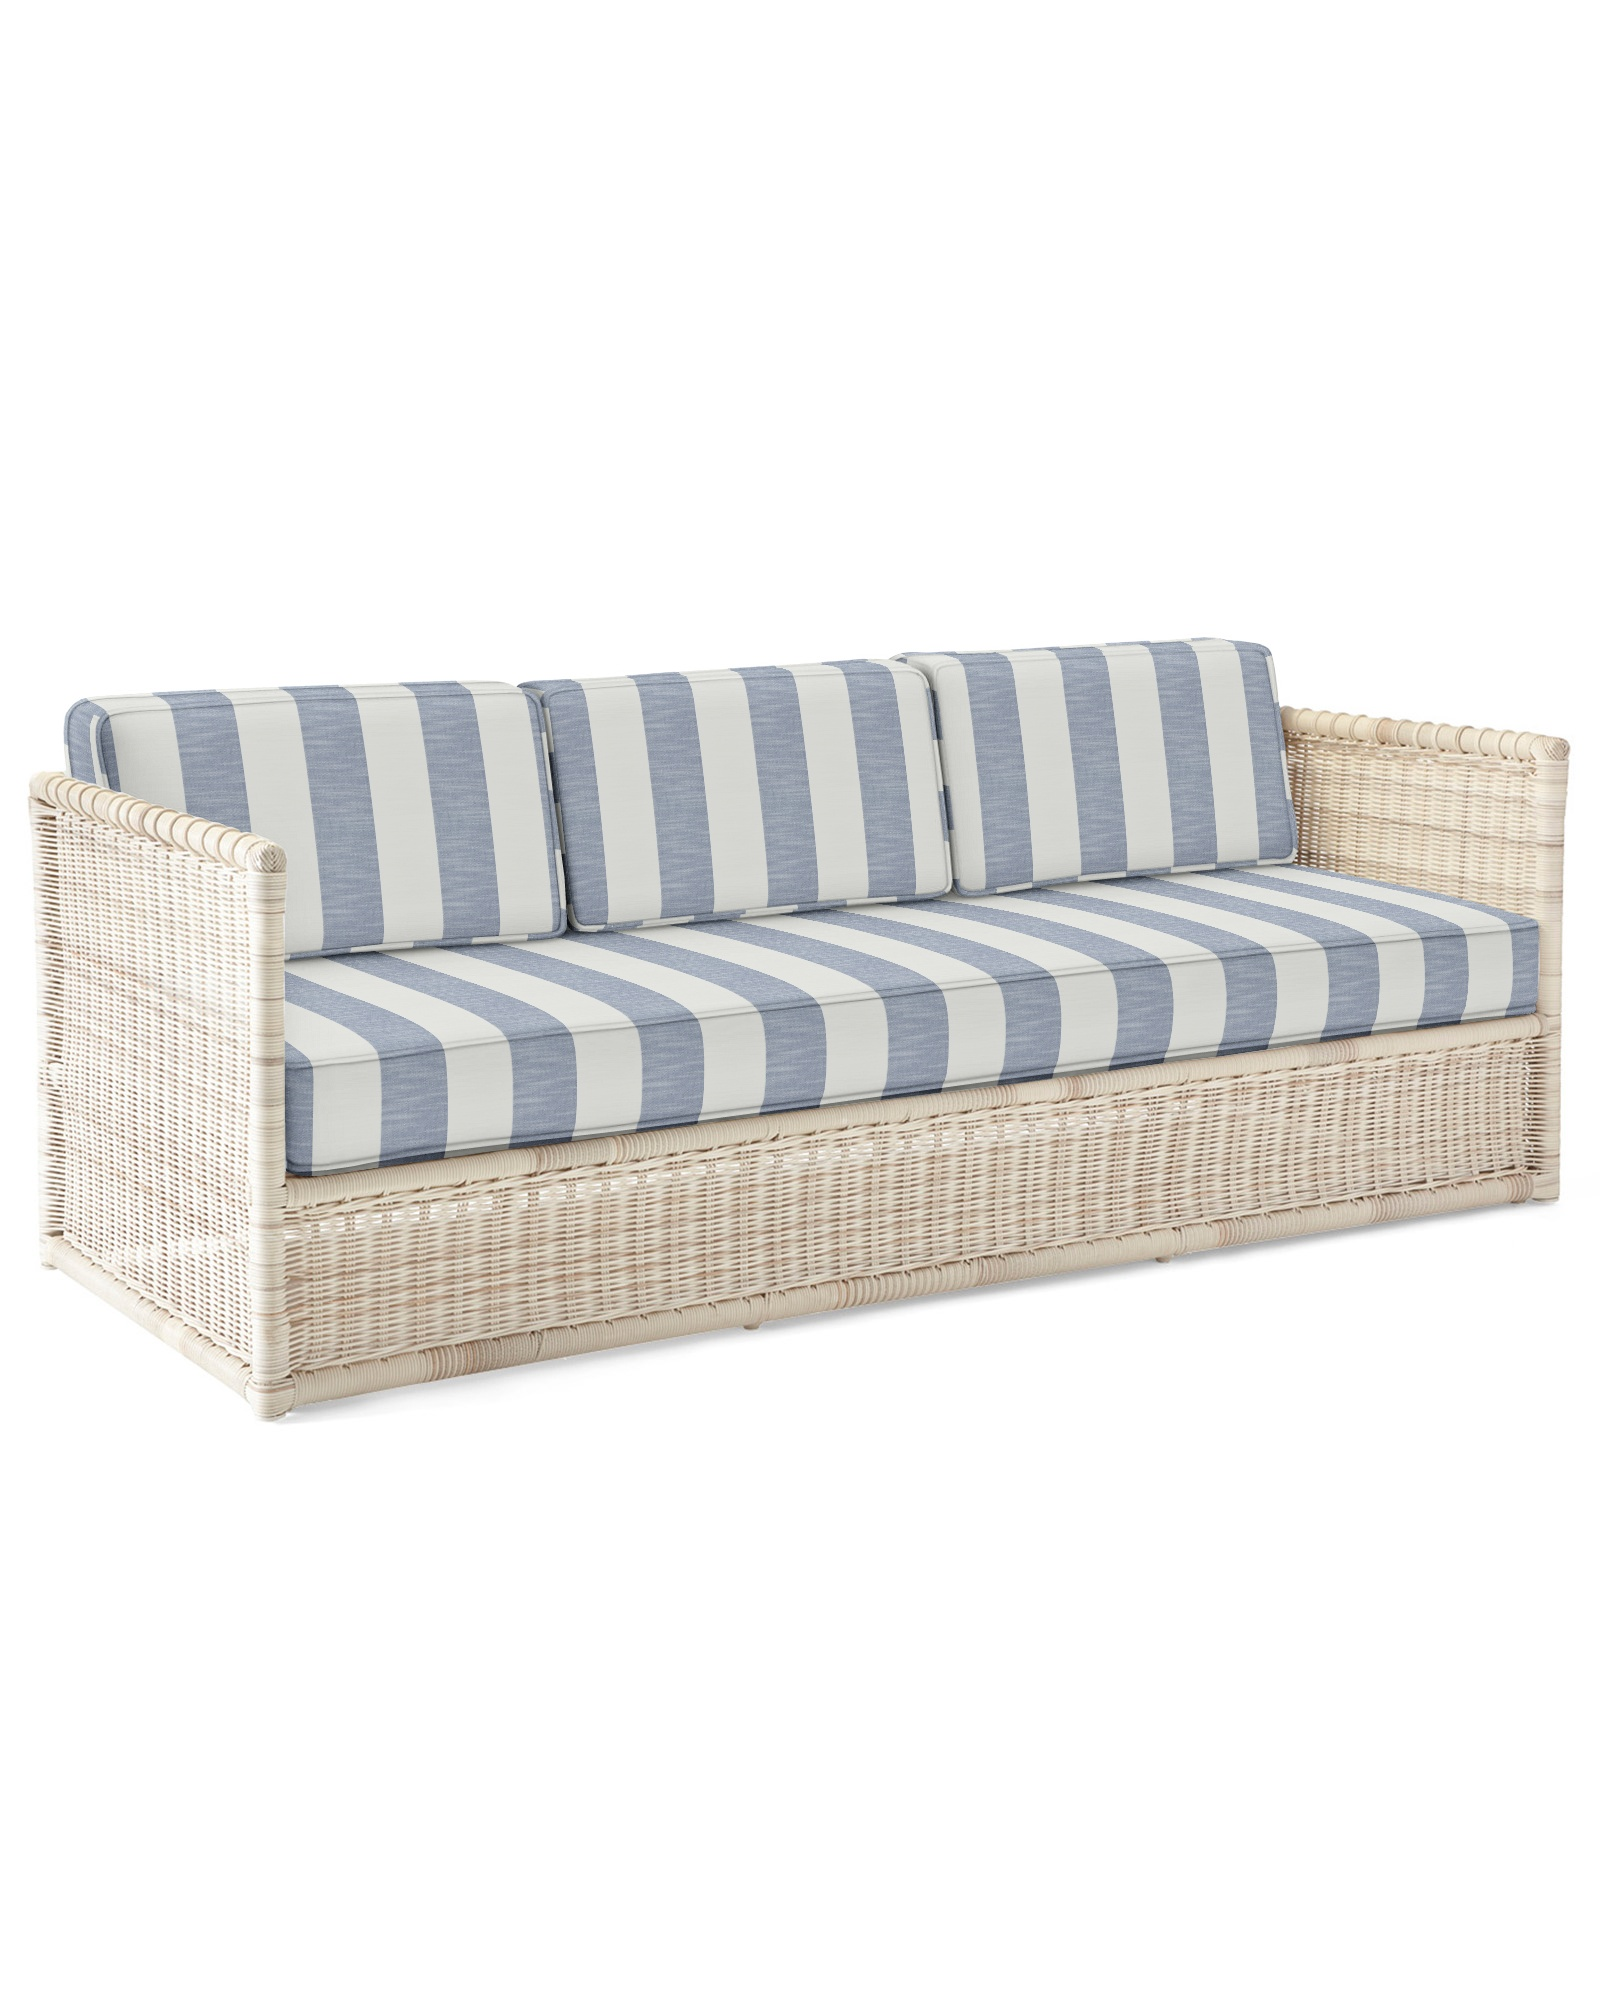 Cushion Cover for Pacifica Sofa, Beach Stripe Navy